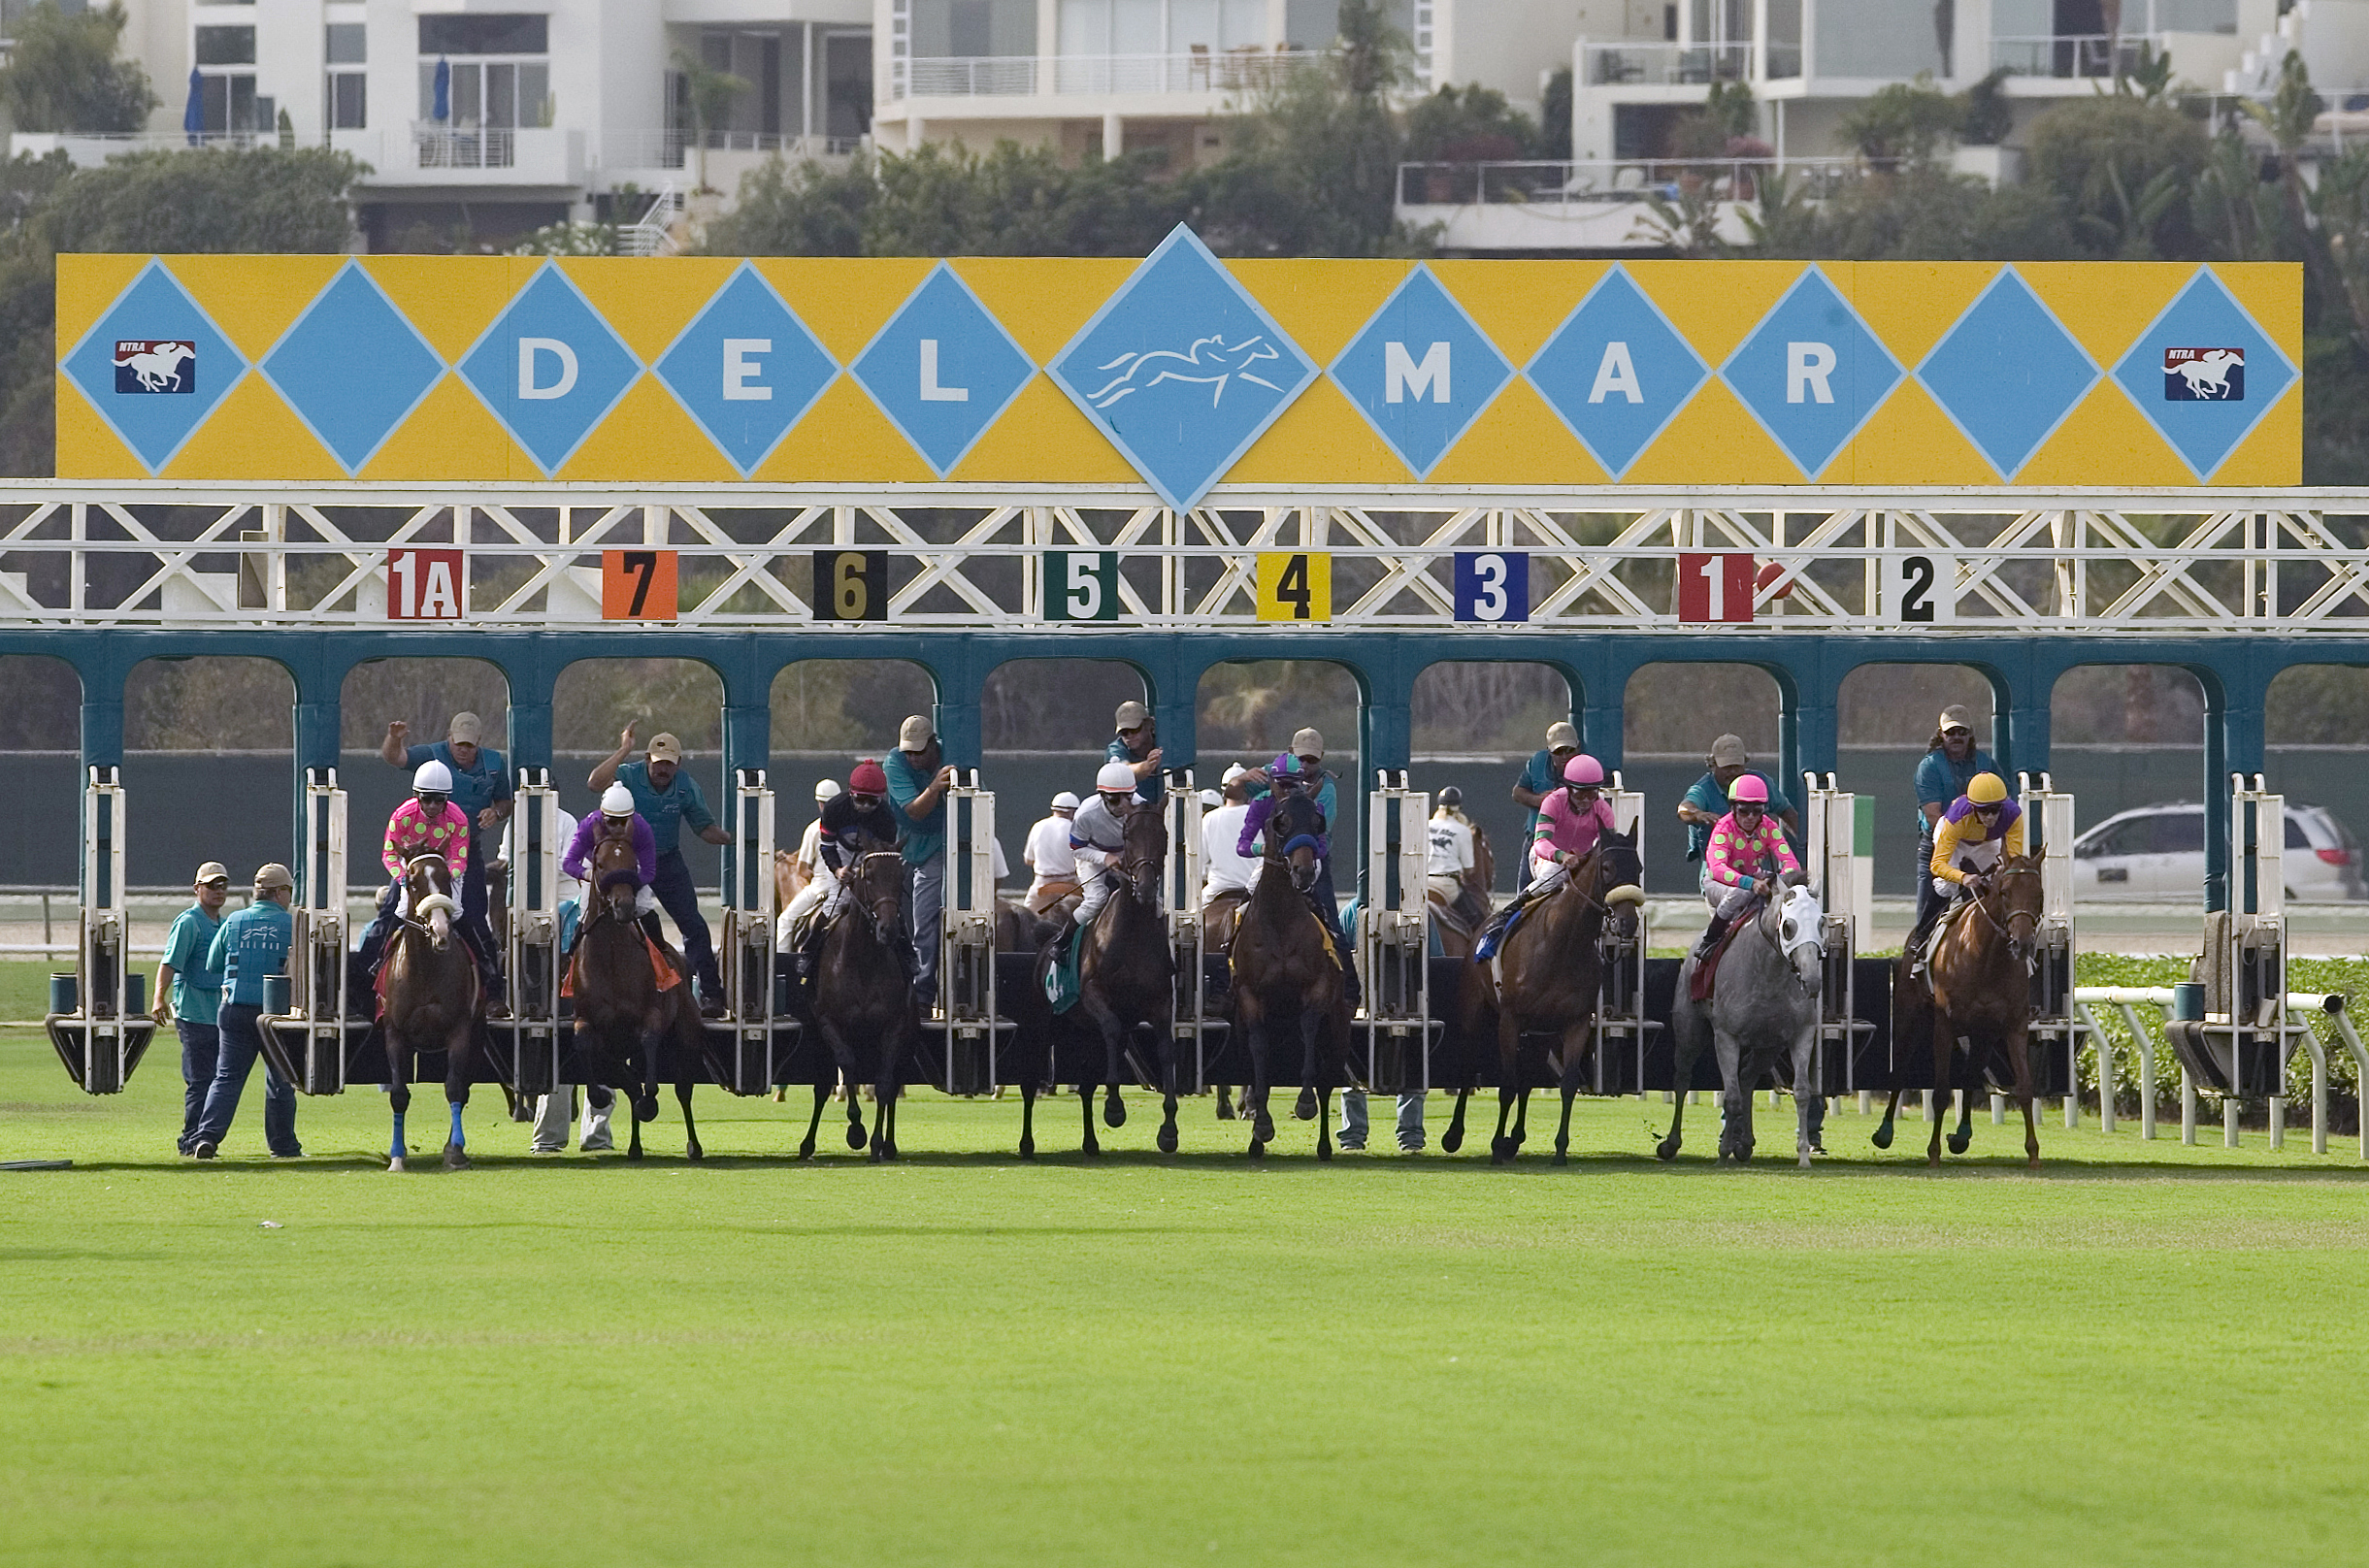 First post at the Del Mar Racetracks is July 17, 2013 at 2:00 pm.